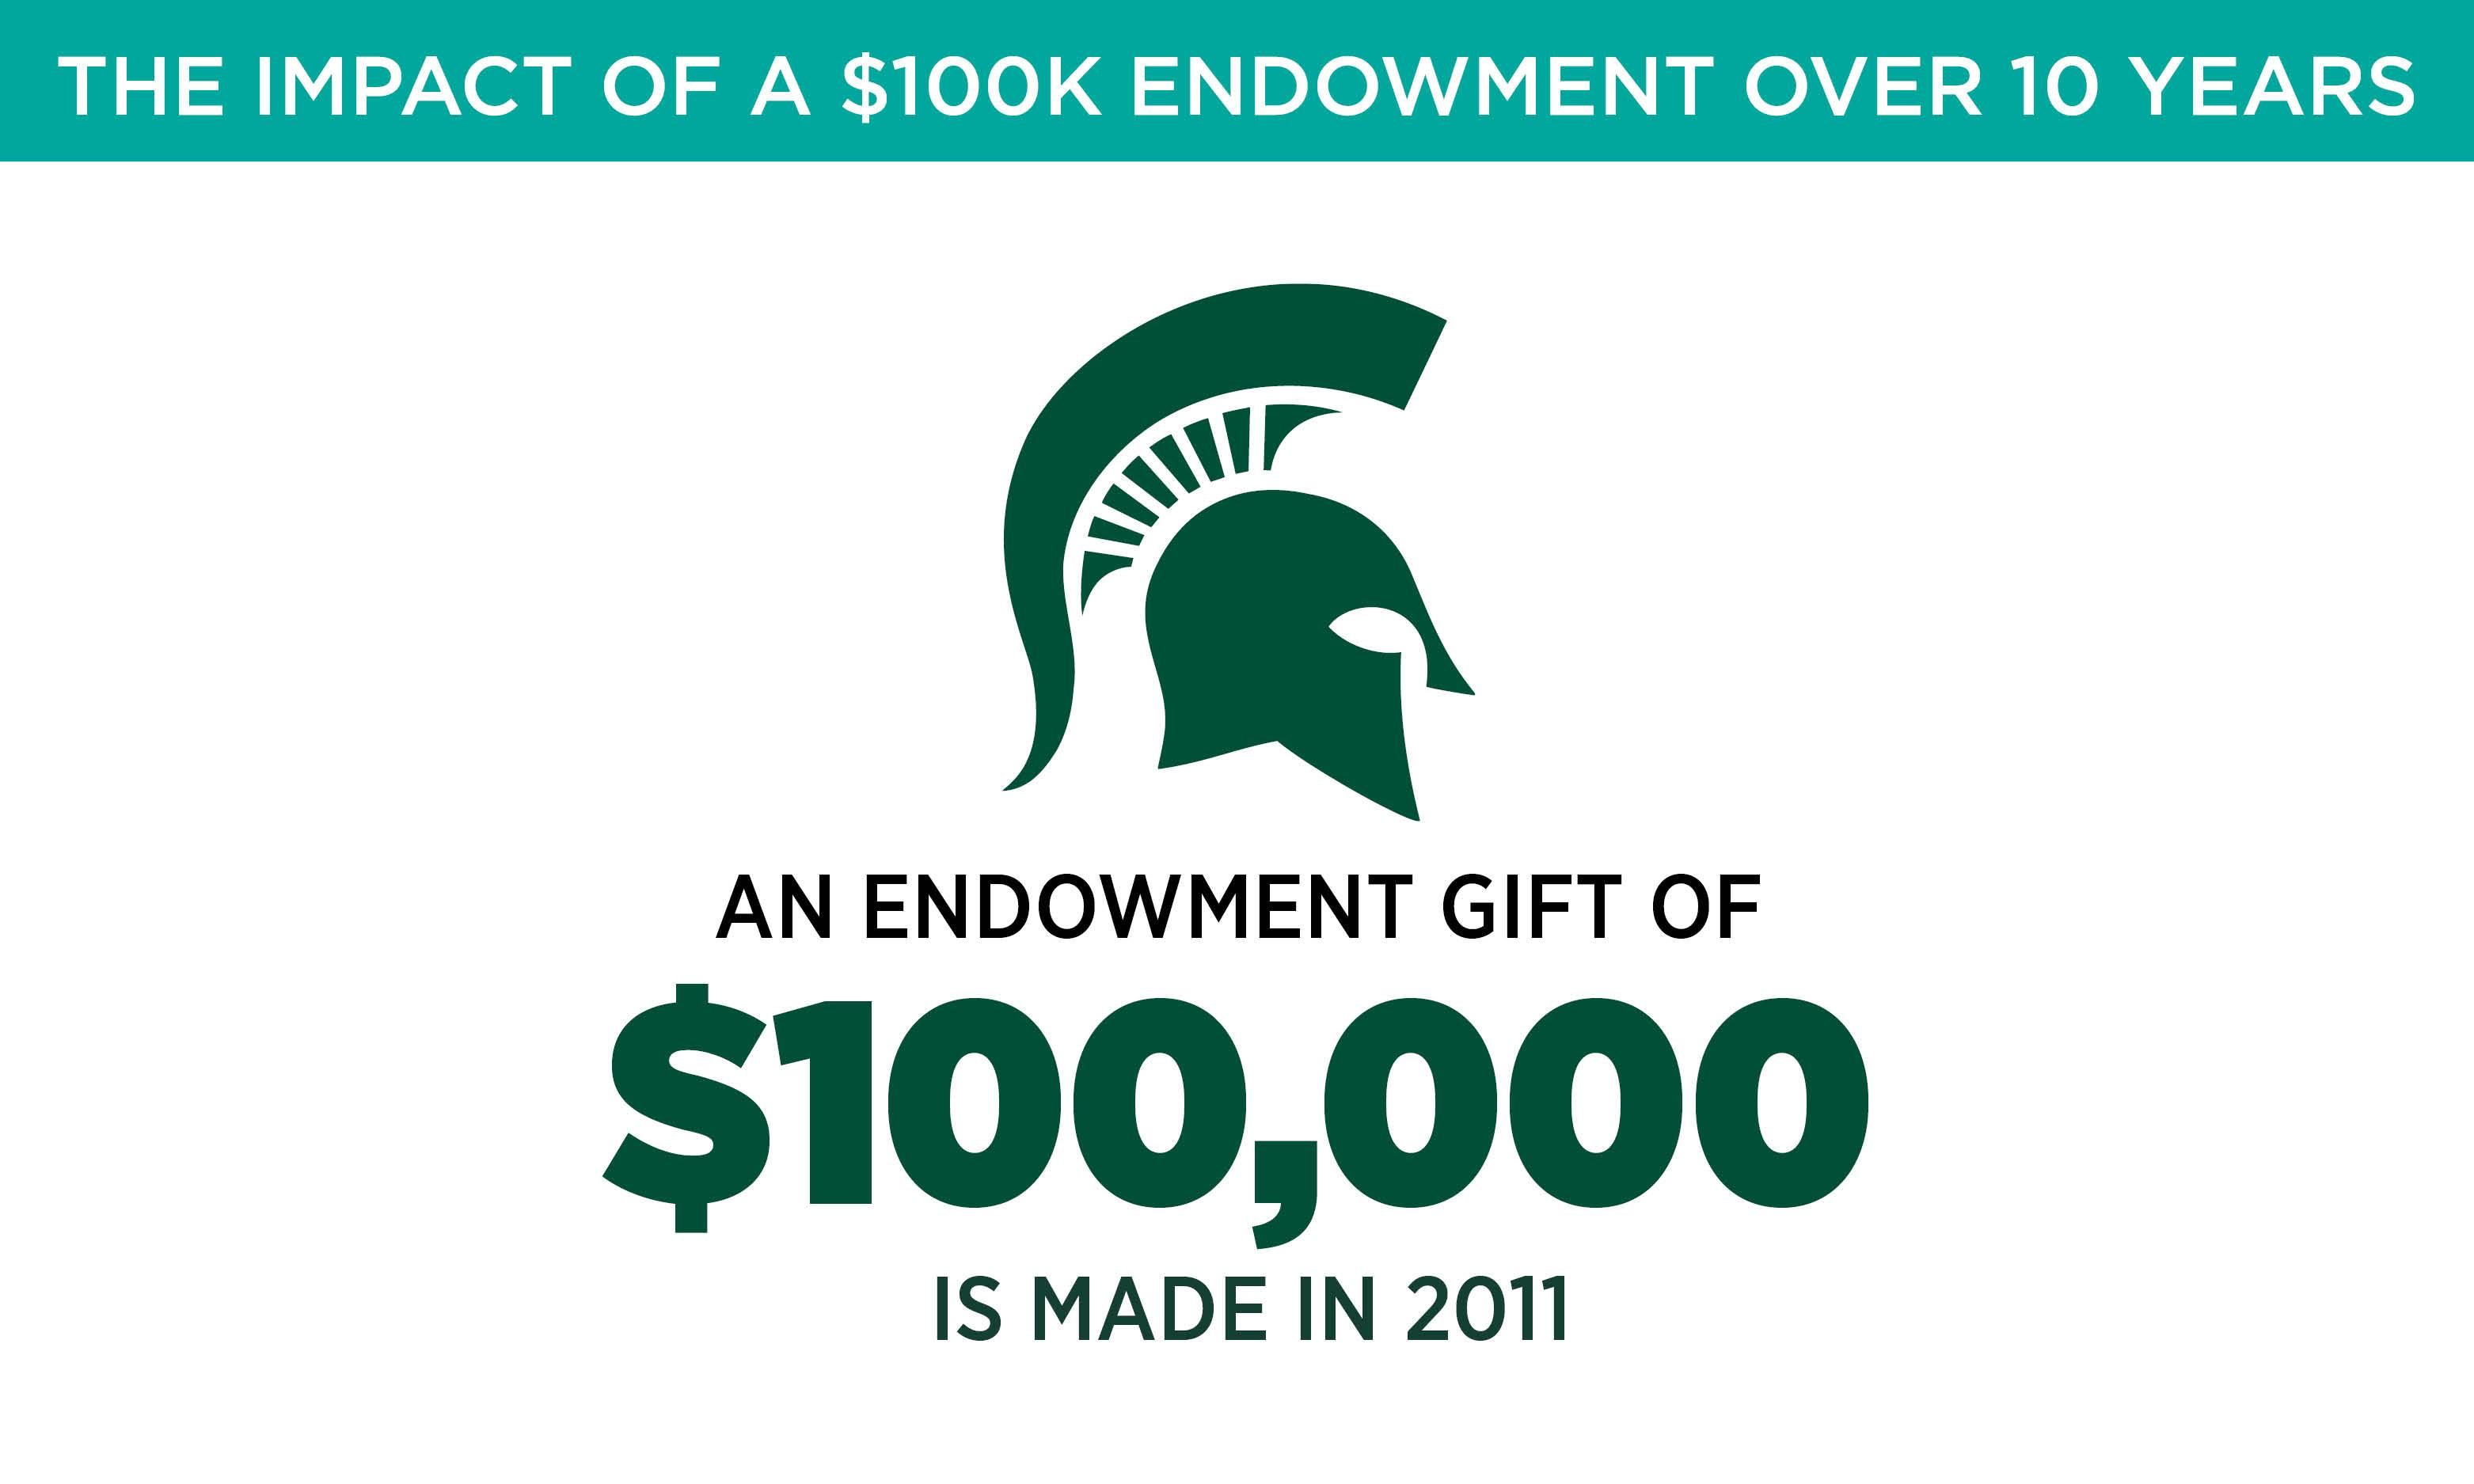 An endowment gift of $100,000 is made in 2011